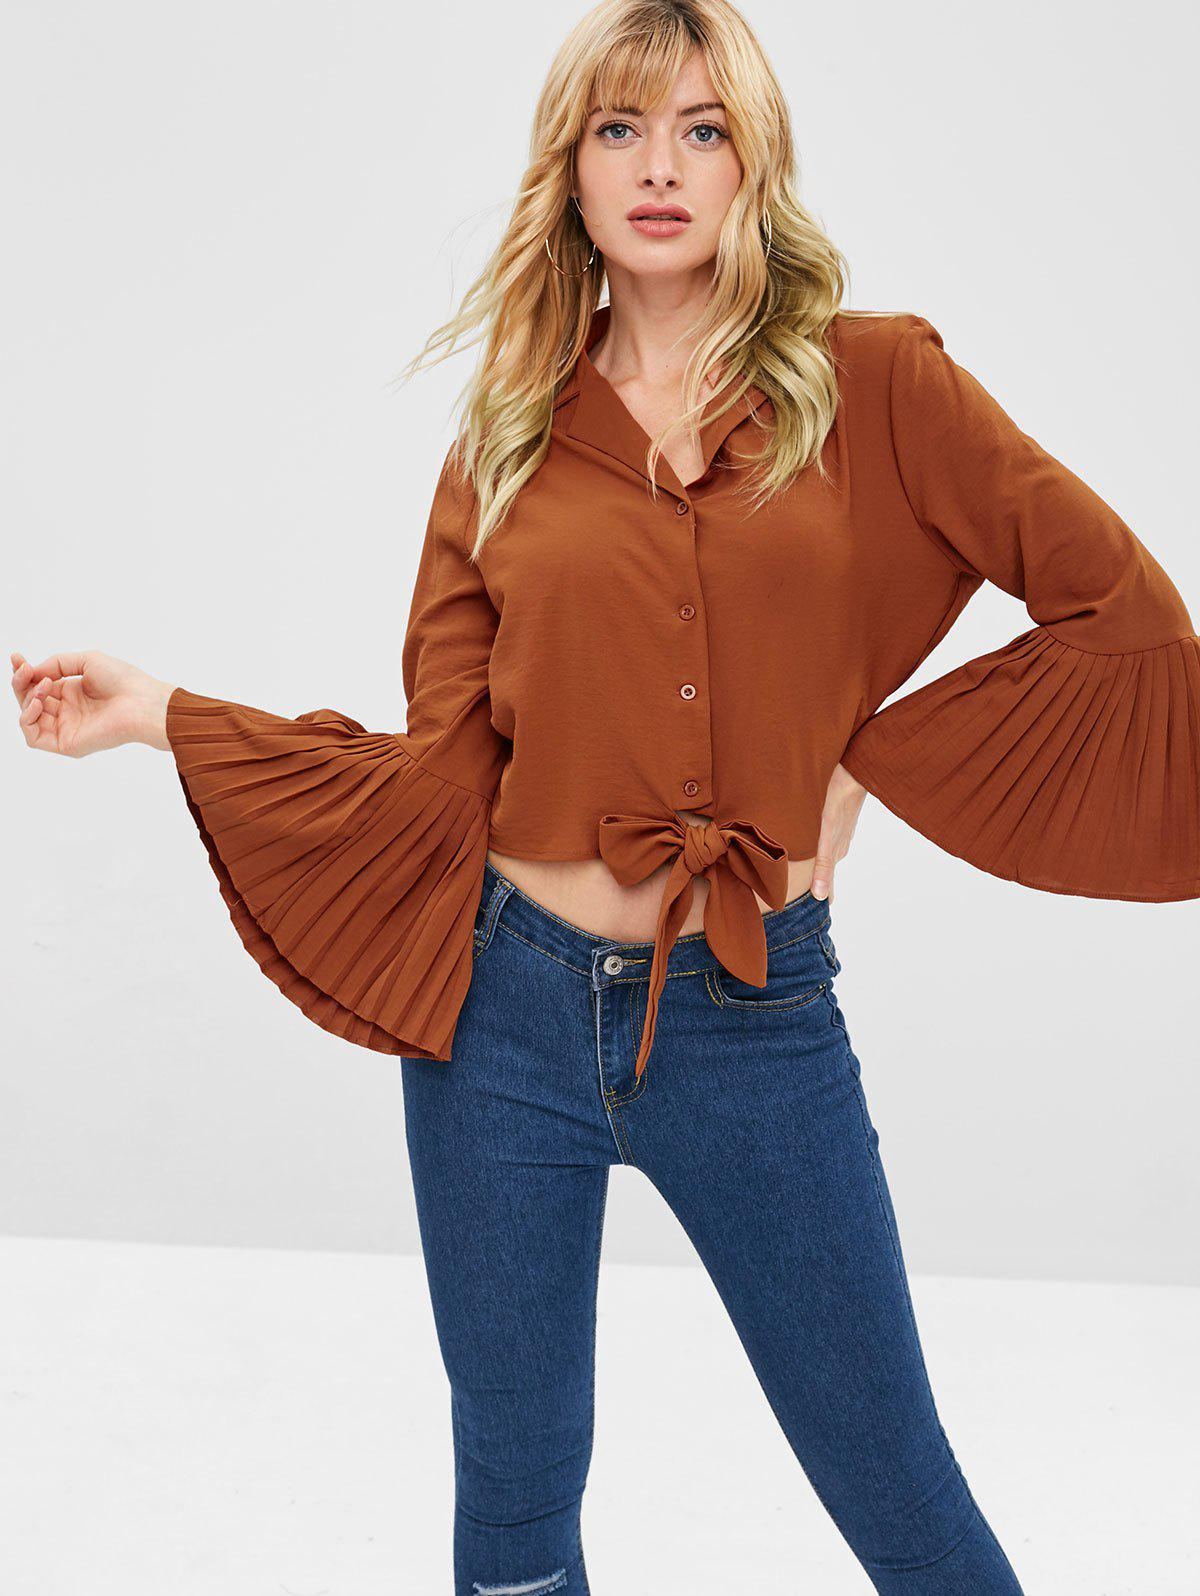 ZAFUL Knotted Pleated Flare Sleeves Blouse фото